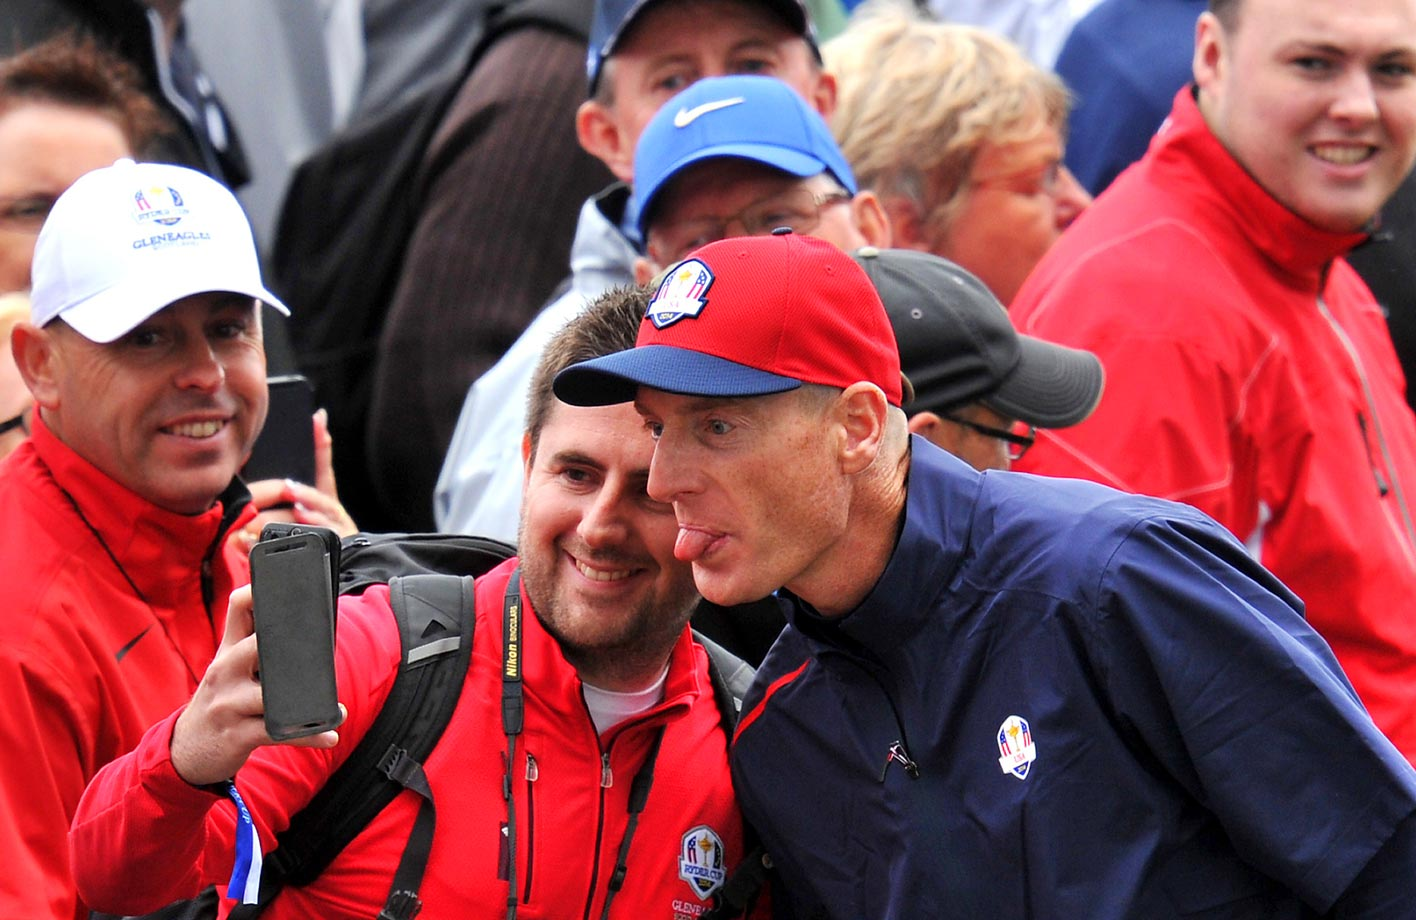 Jim Furyk of Team U.S. poses for pictures during practice at the Ryder Cup.